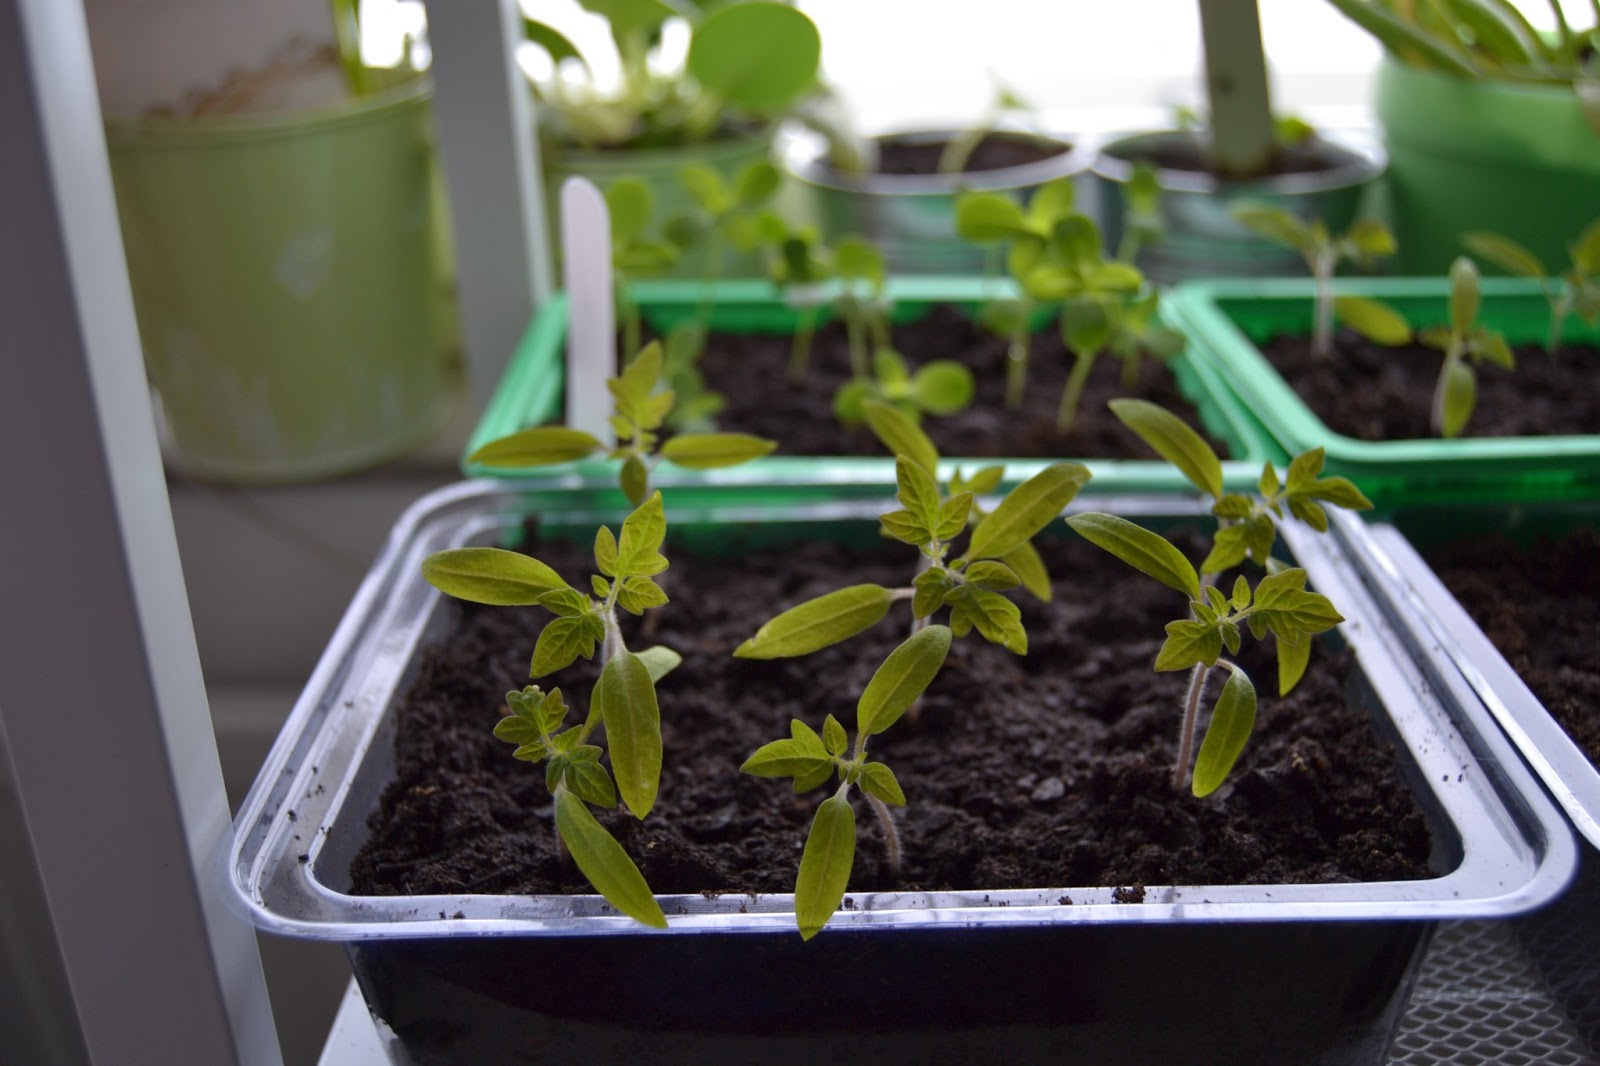 Taimet kasvavat – Seedlings are growing